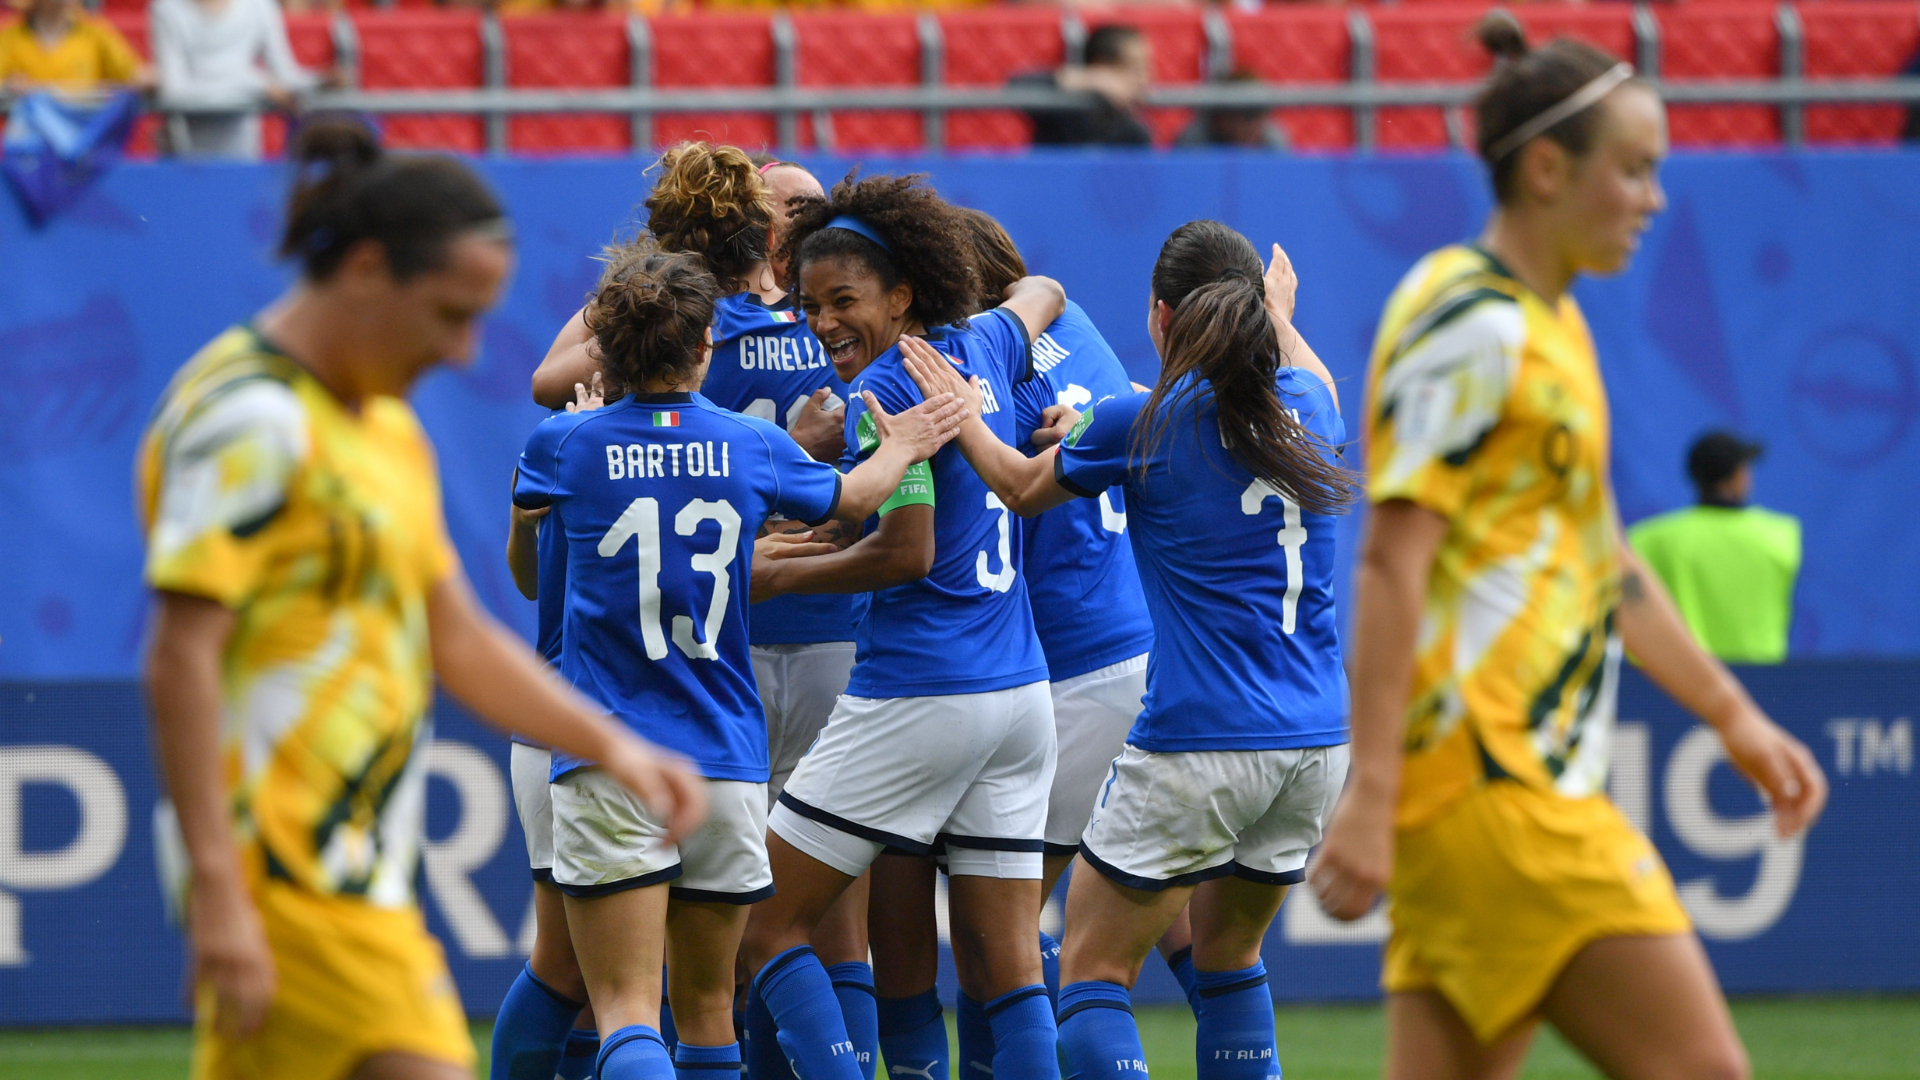 Italy beats Australia 2-1 in Women's World Cup